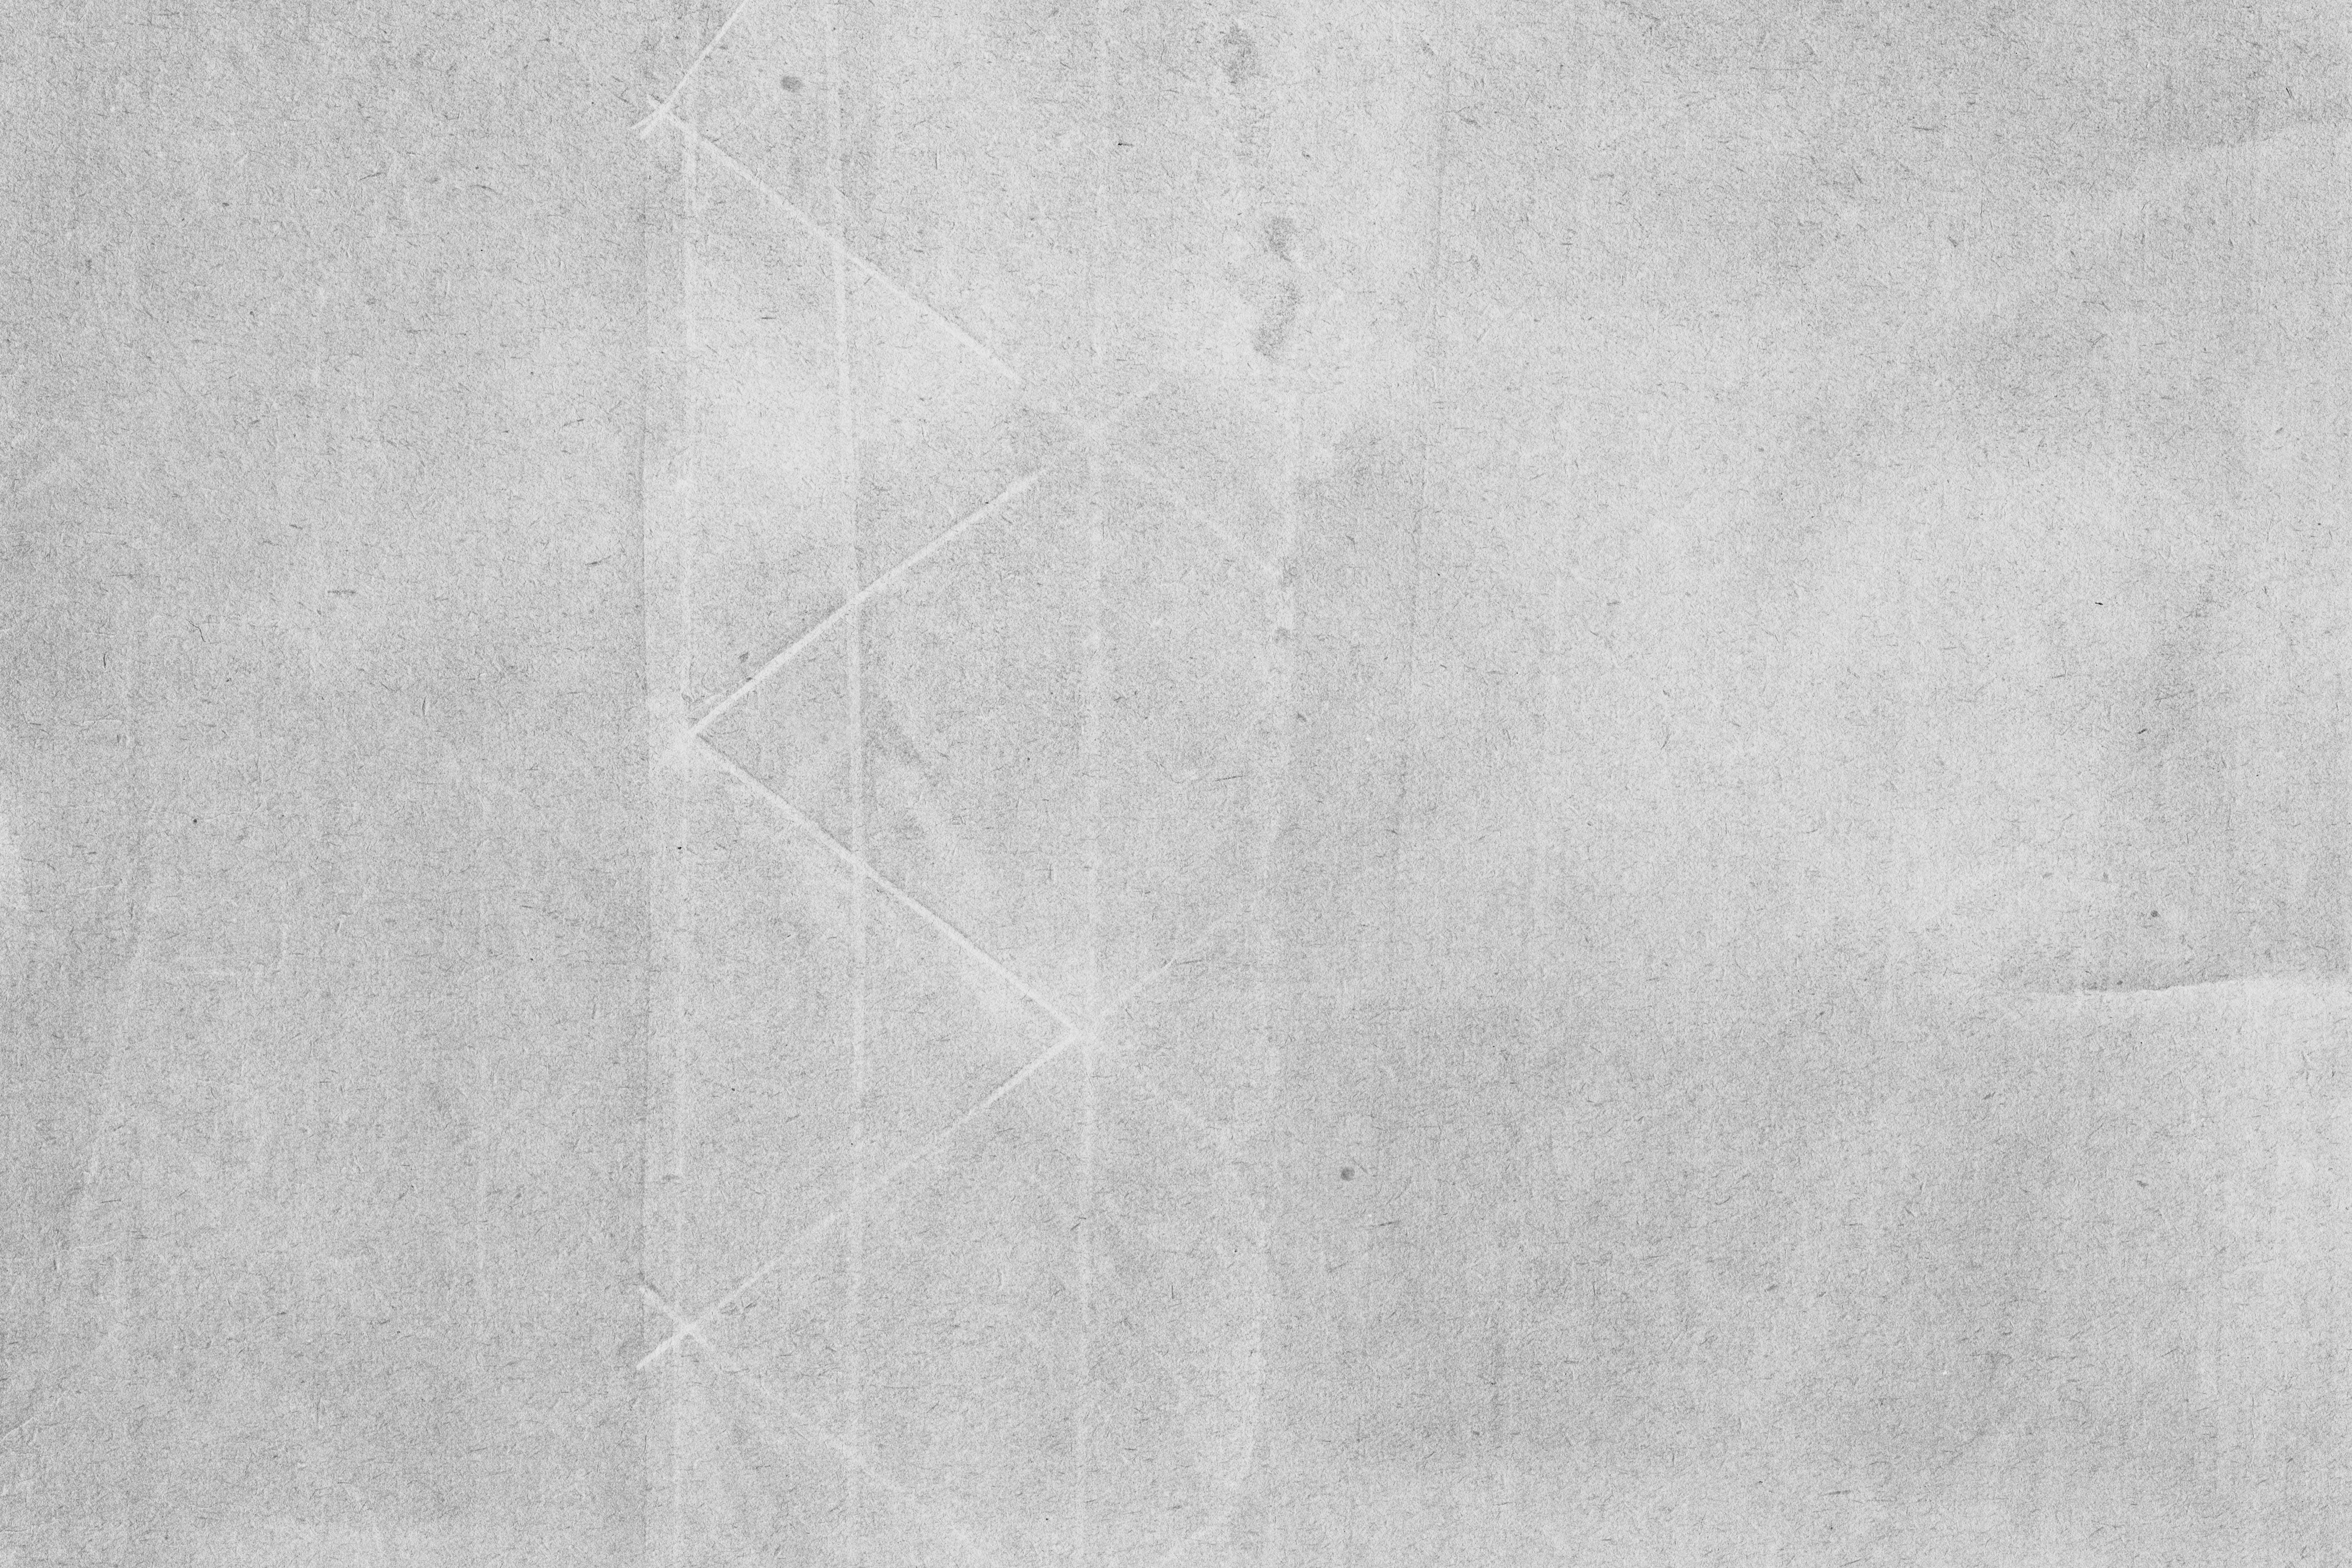 Free High Resolution Textures Lost And Taken 7 White Grunge Textures Grunge Textures Textured Background Grunge